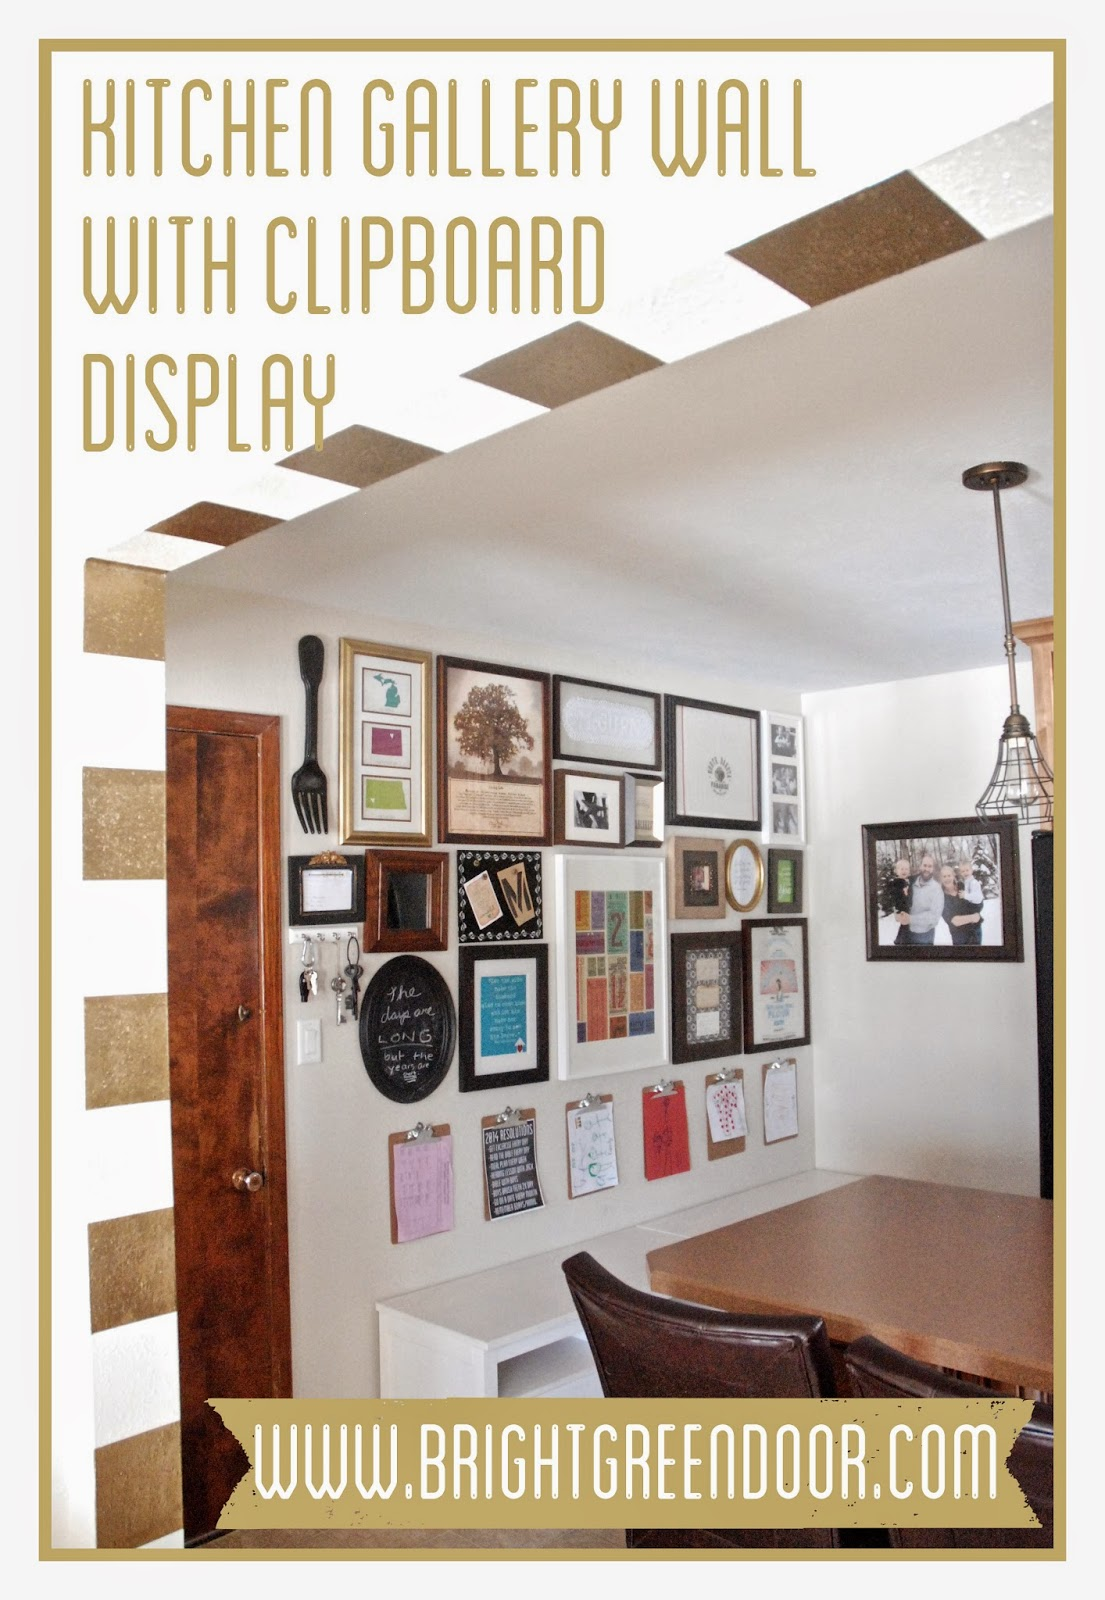 Kitchen Gallery Wall with Clipboard Display